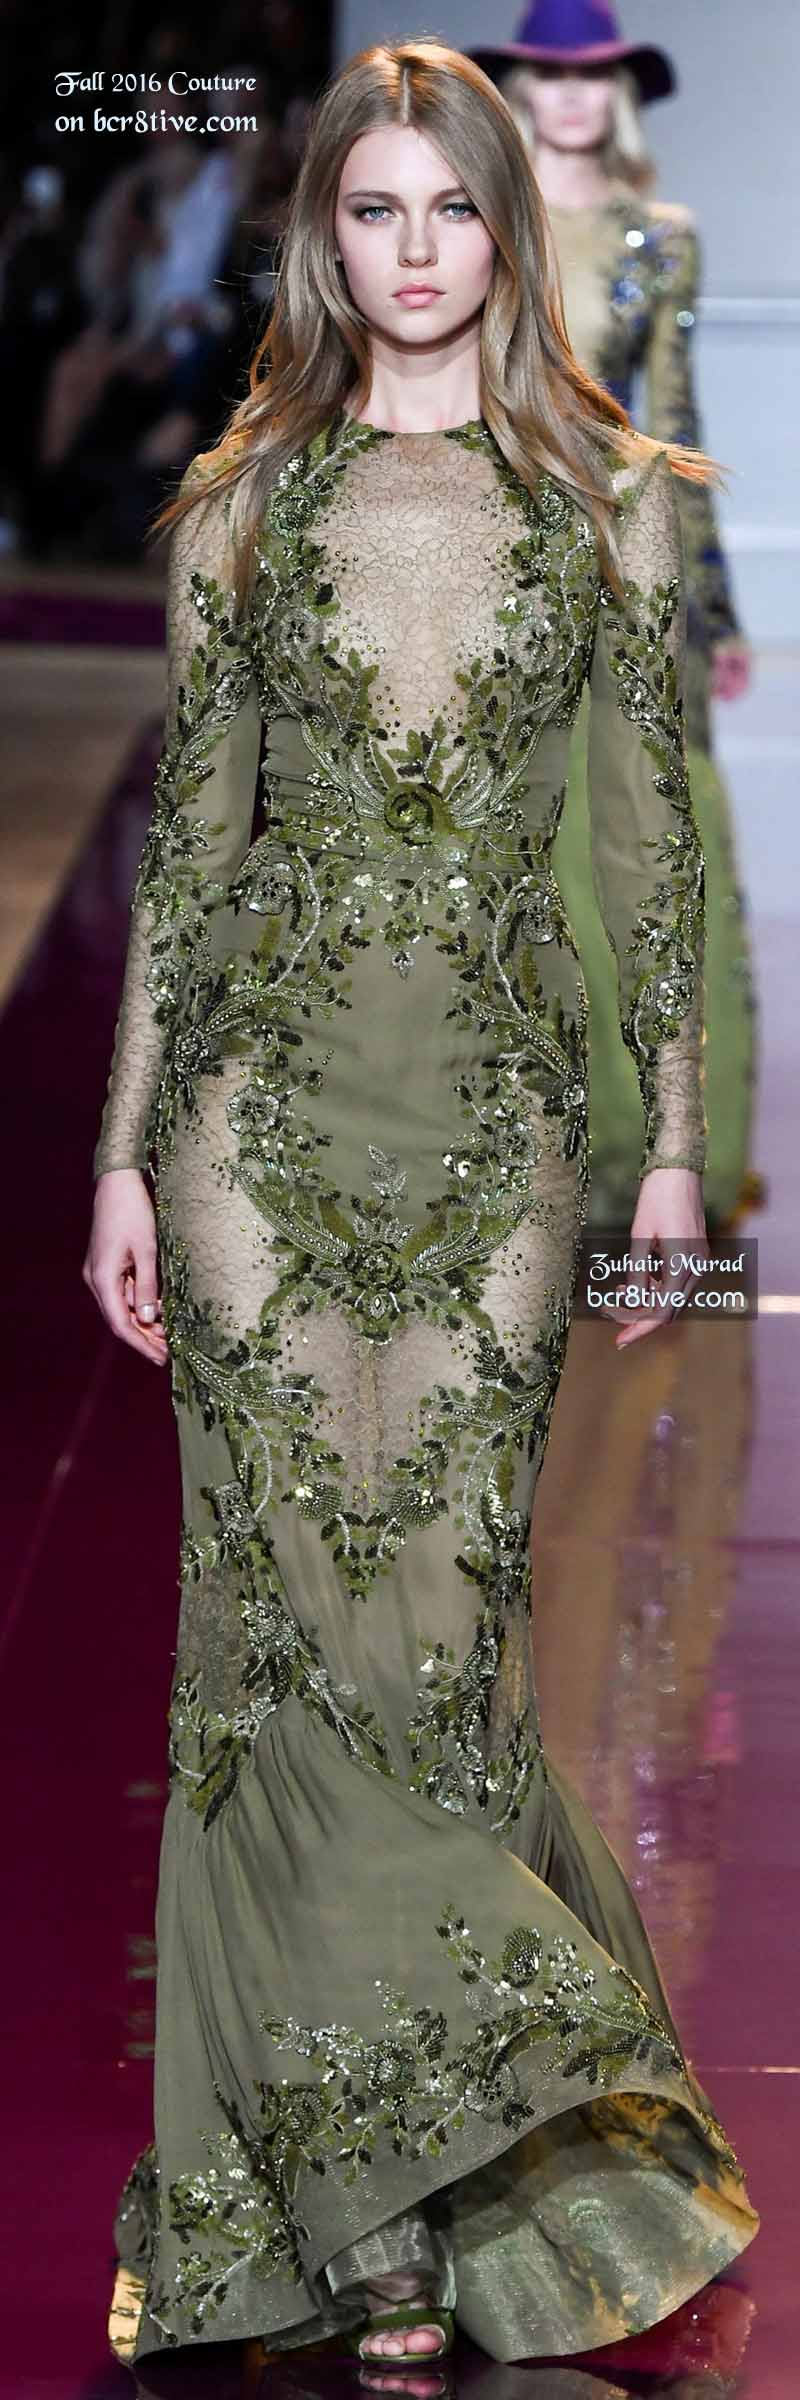 de984a26e15 ... Zuhair Murad - The Best Fall 2016 Haute Couture Fashion ...